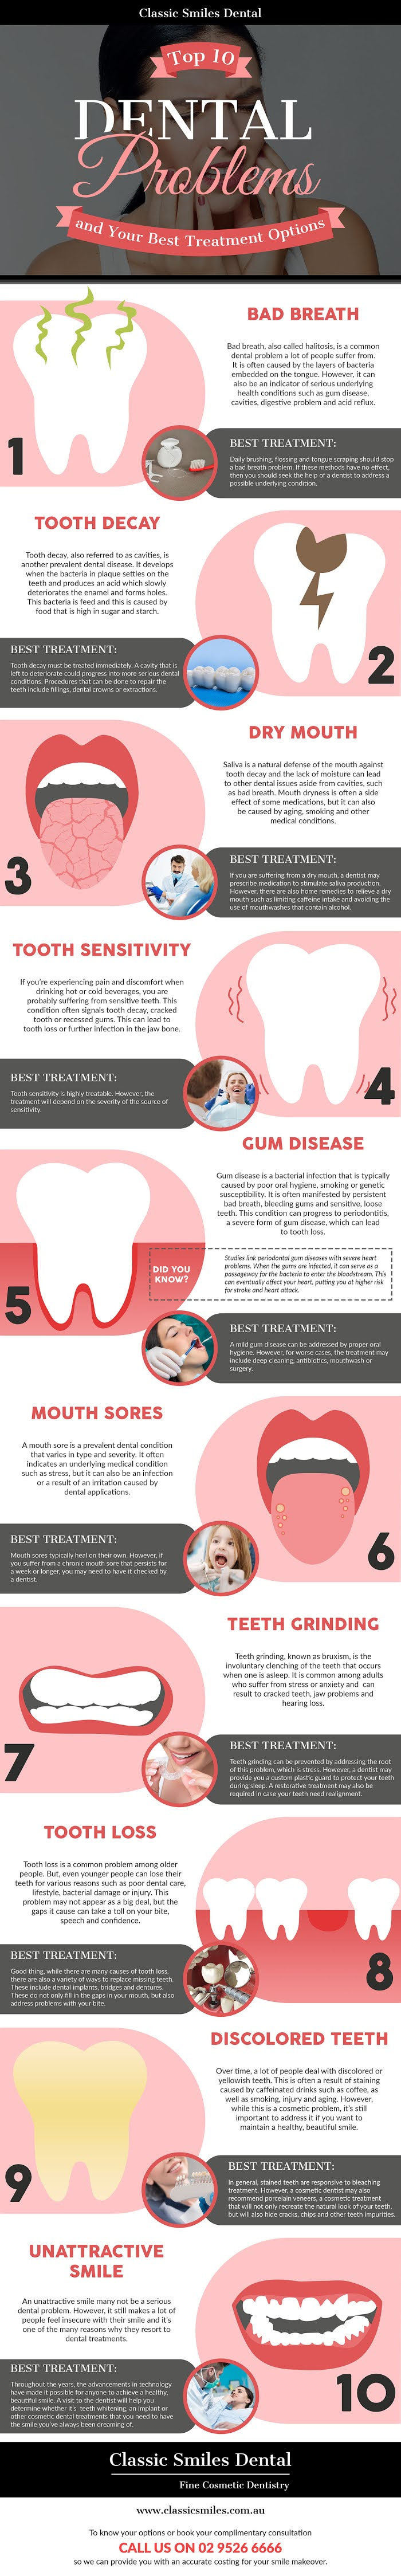 Top 10 Dental Problems and Your Best Treatment Options #infographic